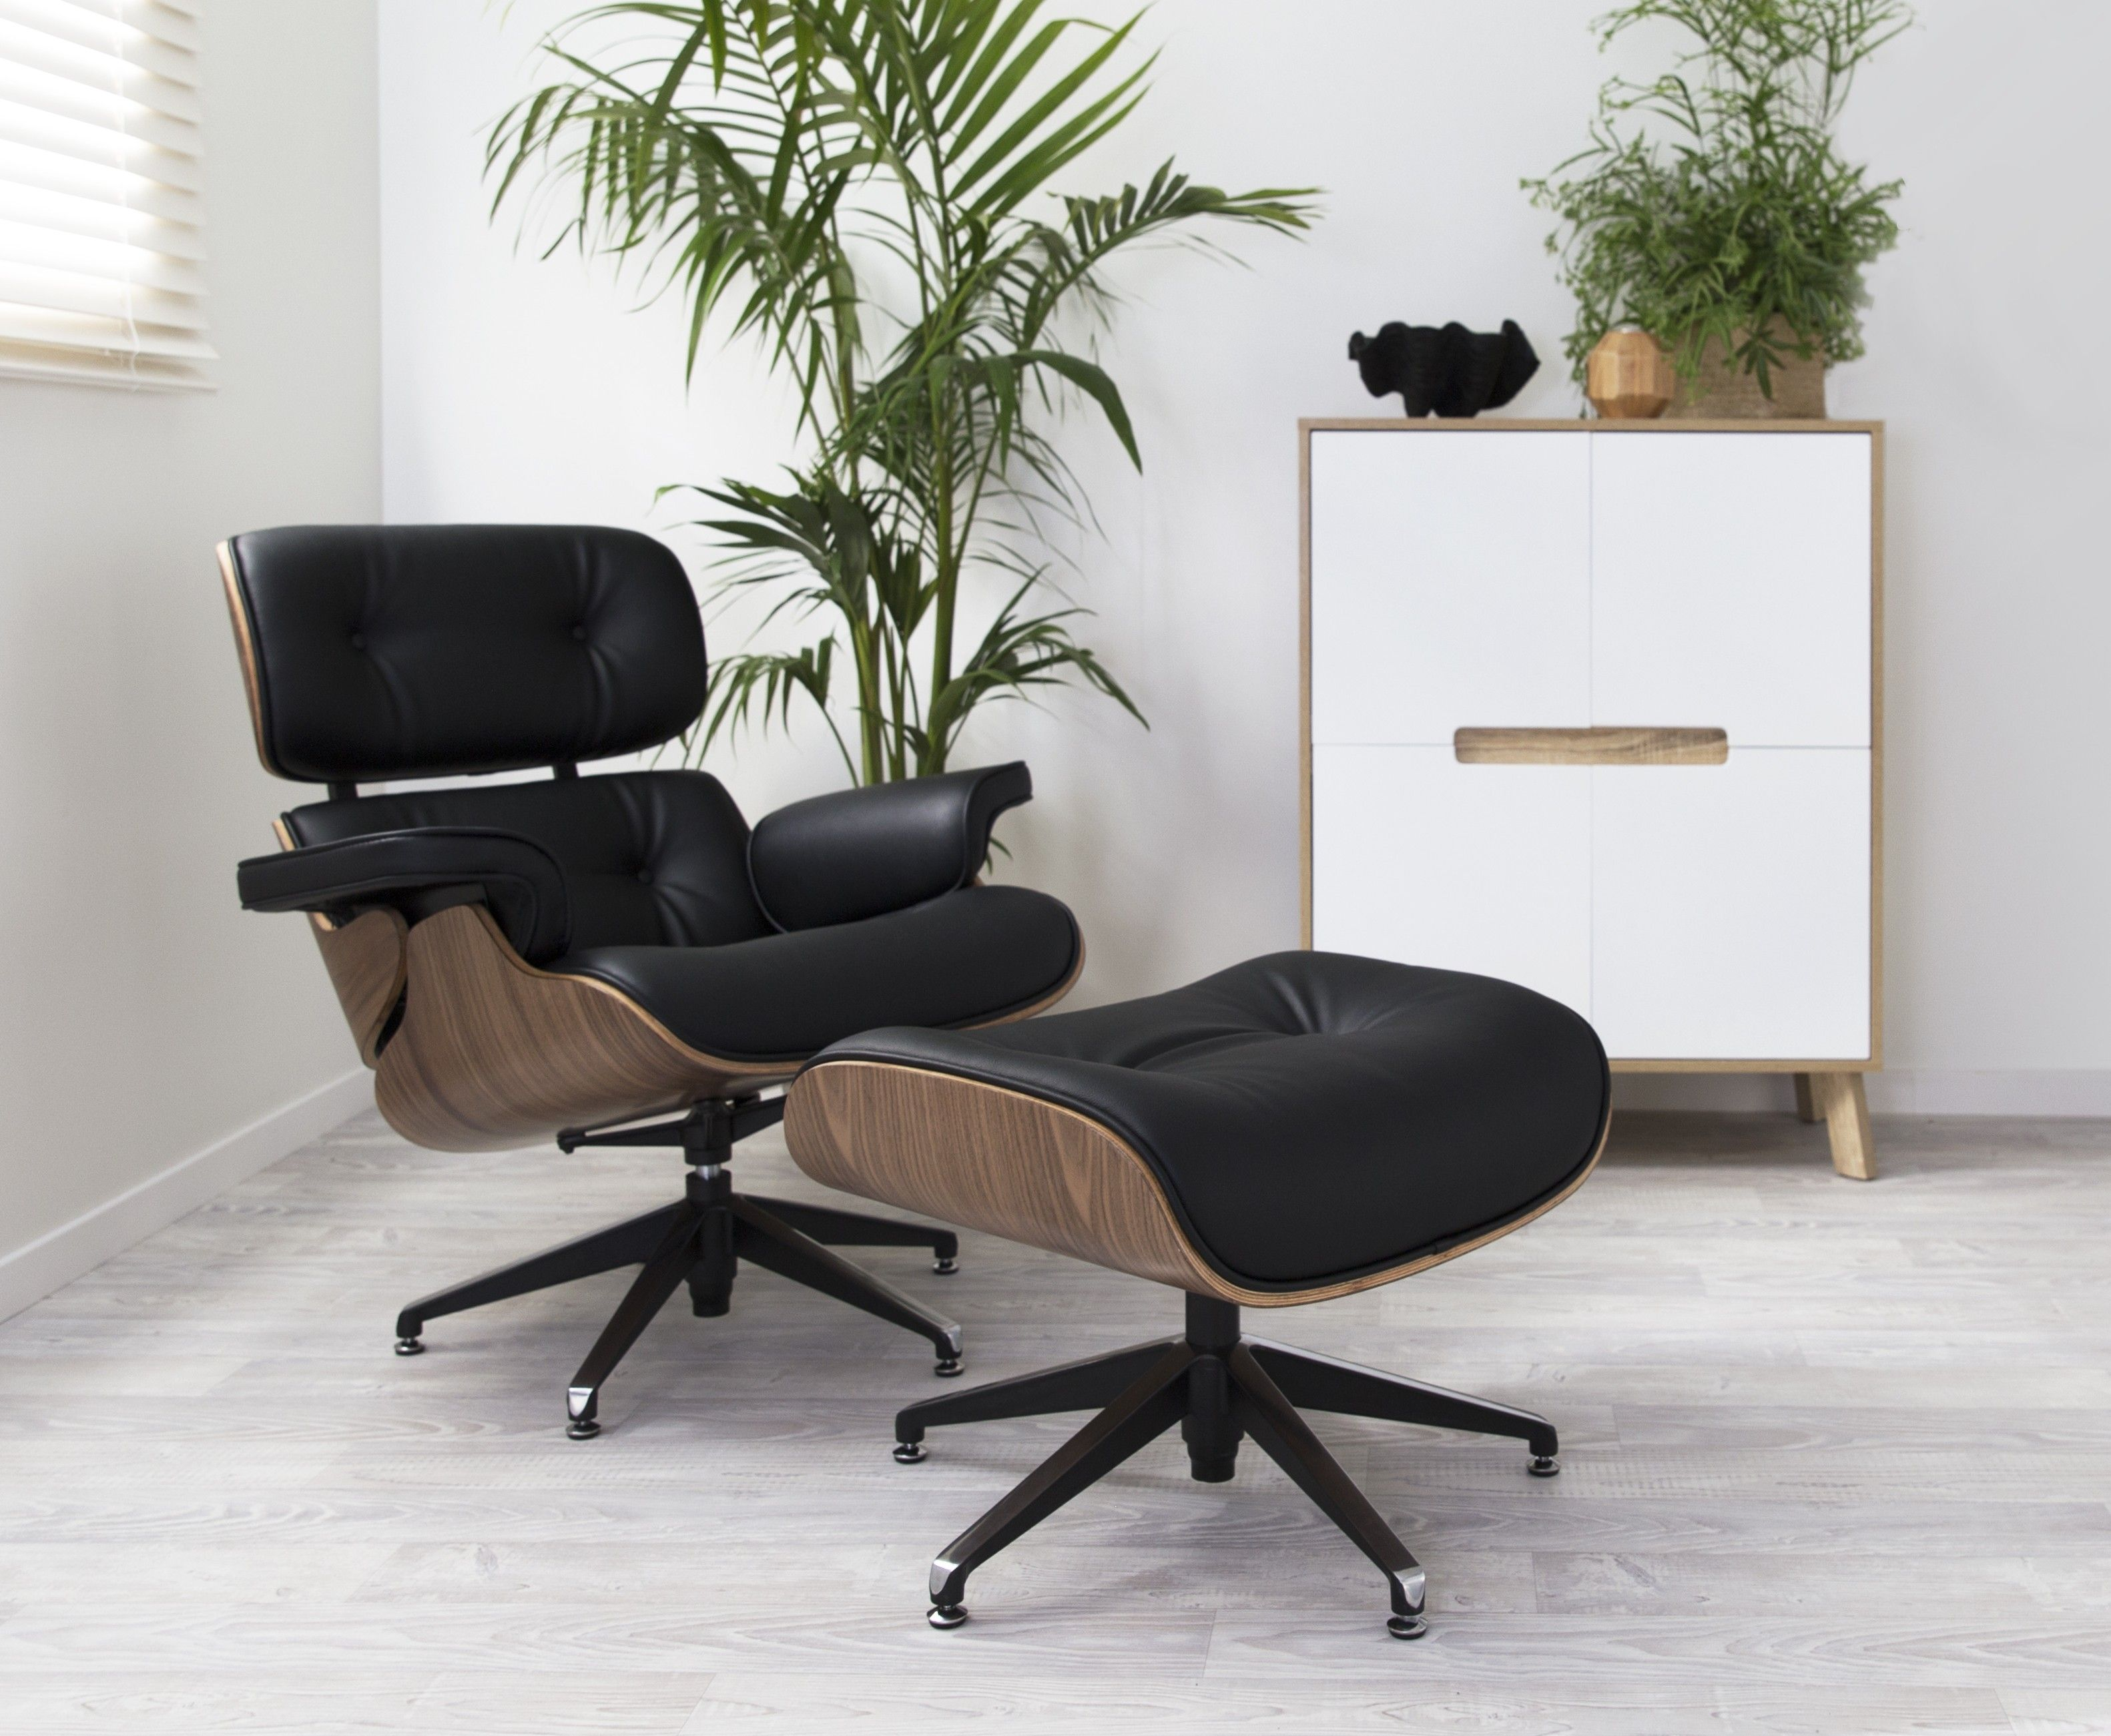 Amazing Replica Eames Lounge Chair Ottoman Guest Room Chair Caraccident5 Cool Chair Designs And Ideas Caraccident5Info